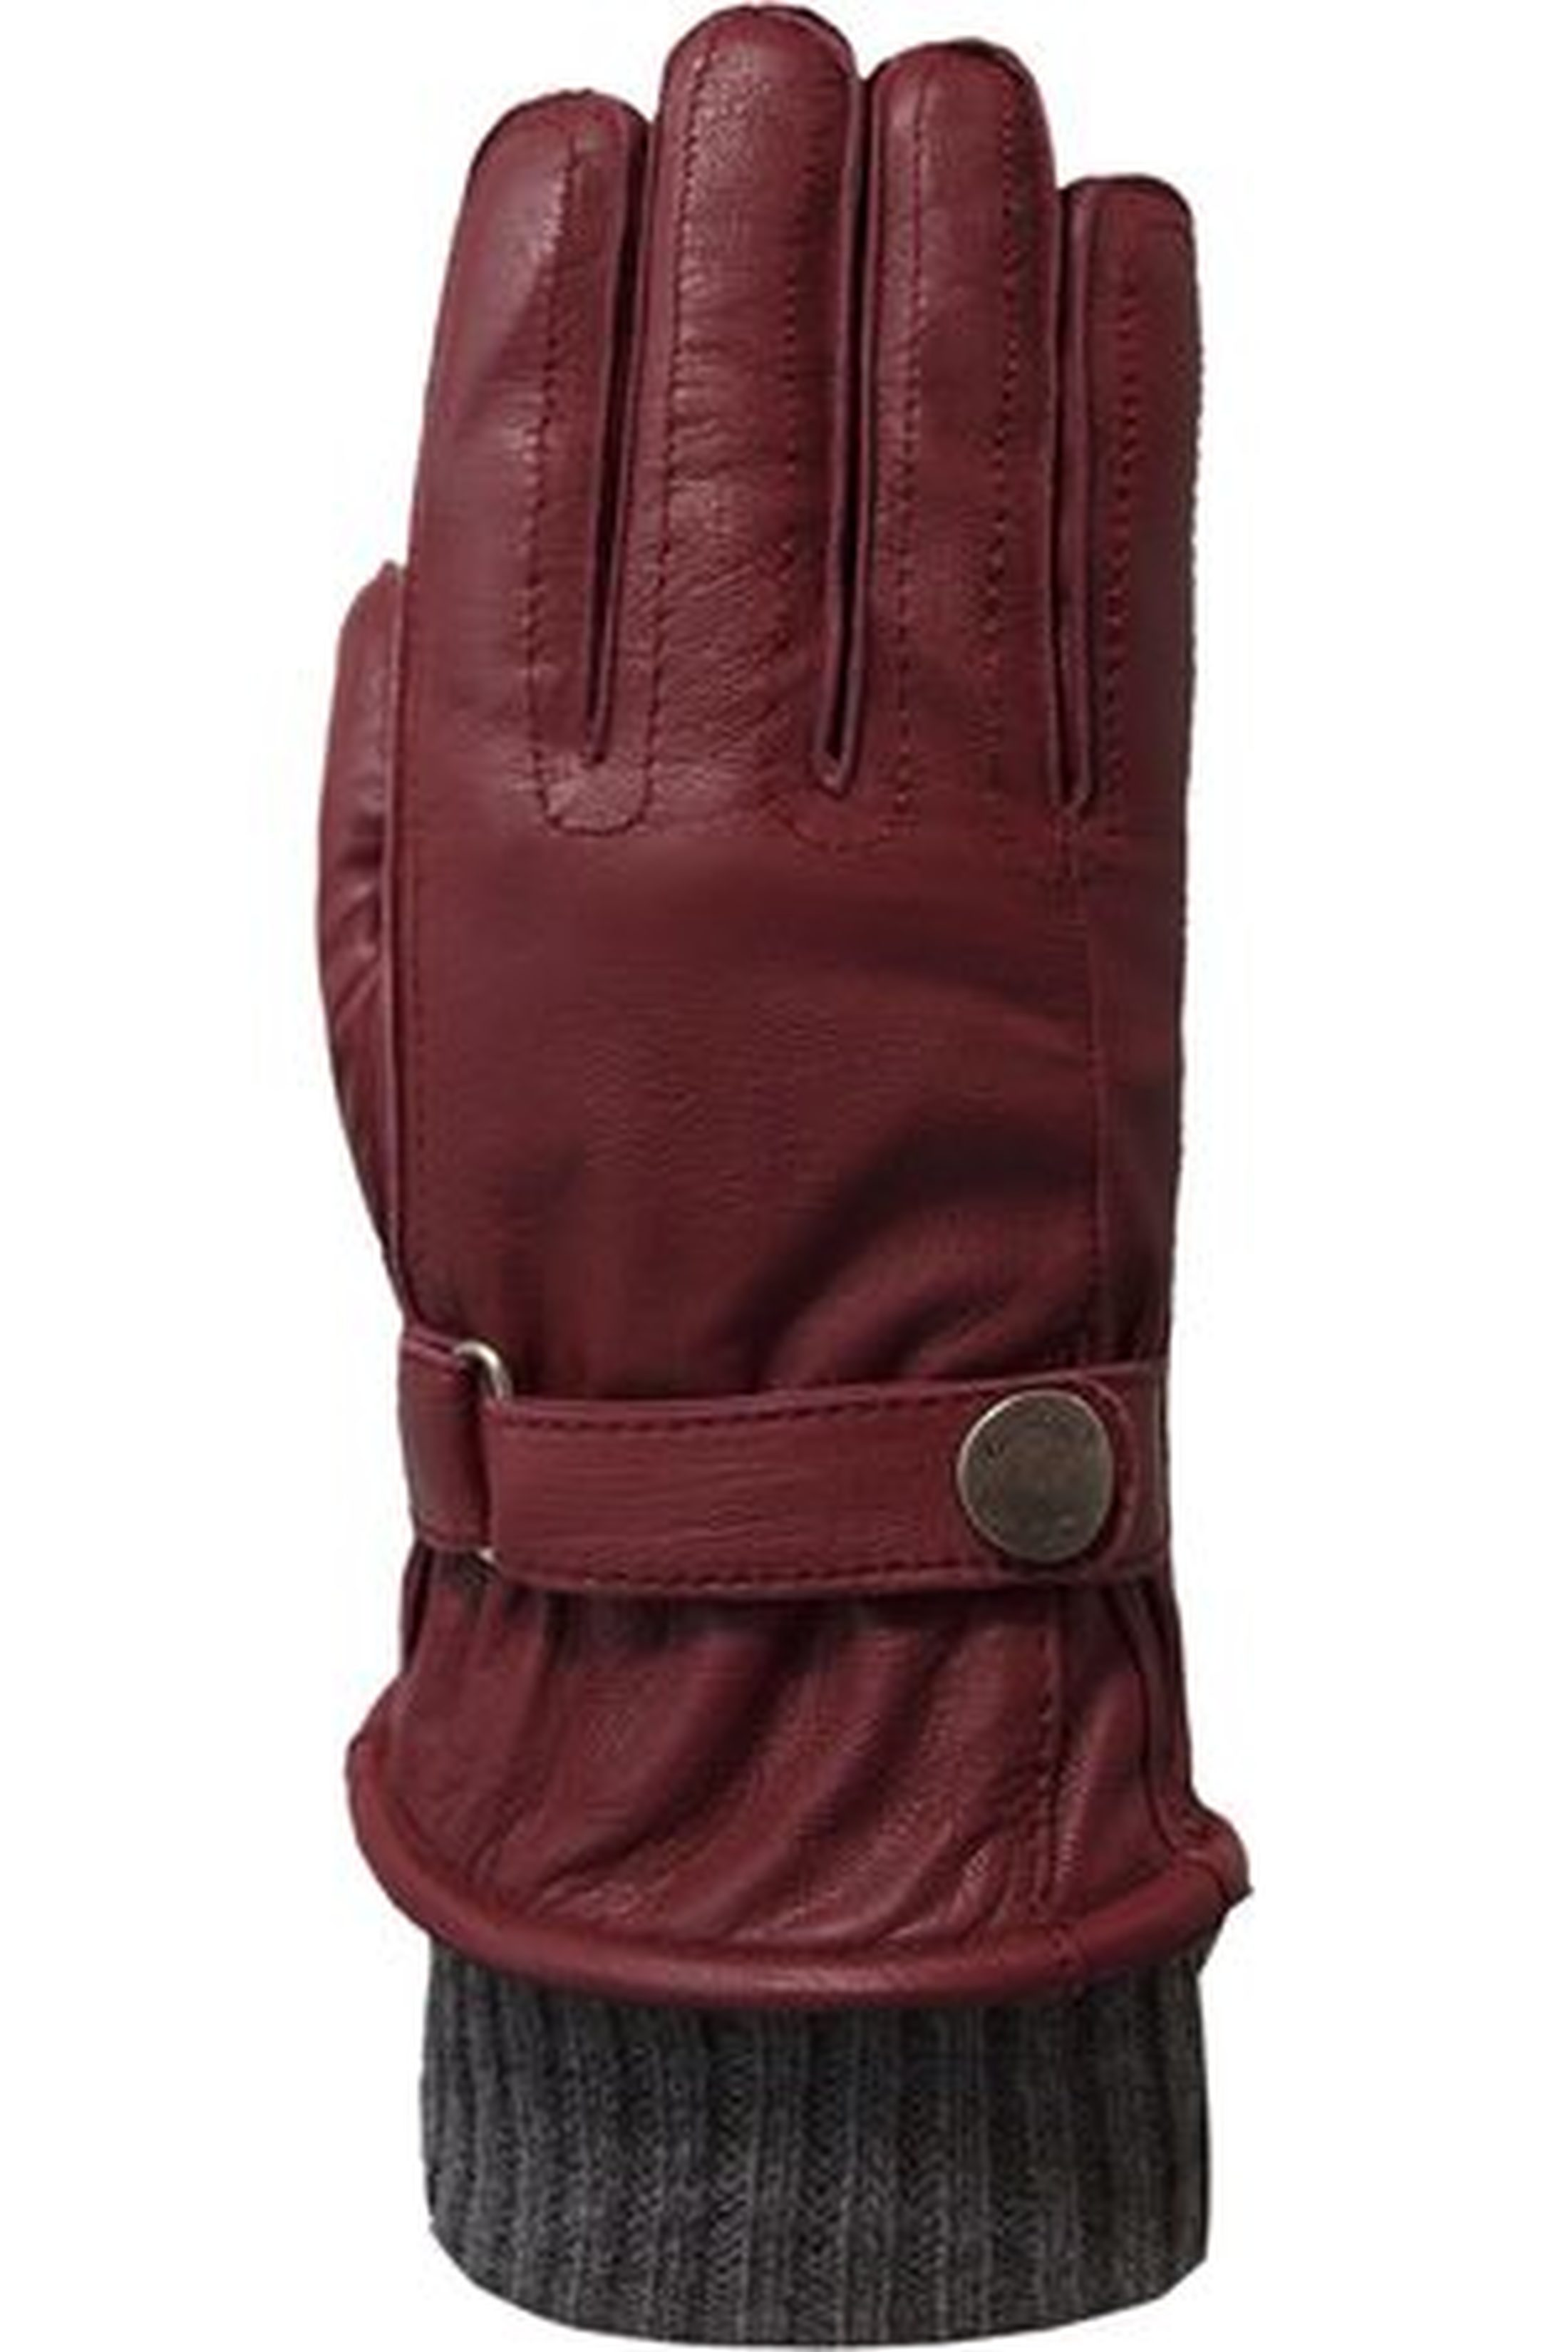 Laimbock Gloves Fremont Burgundy